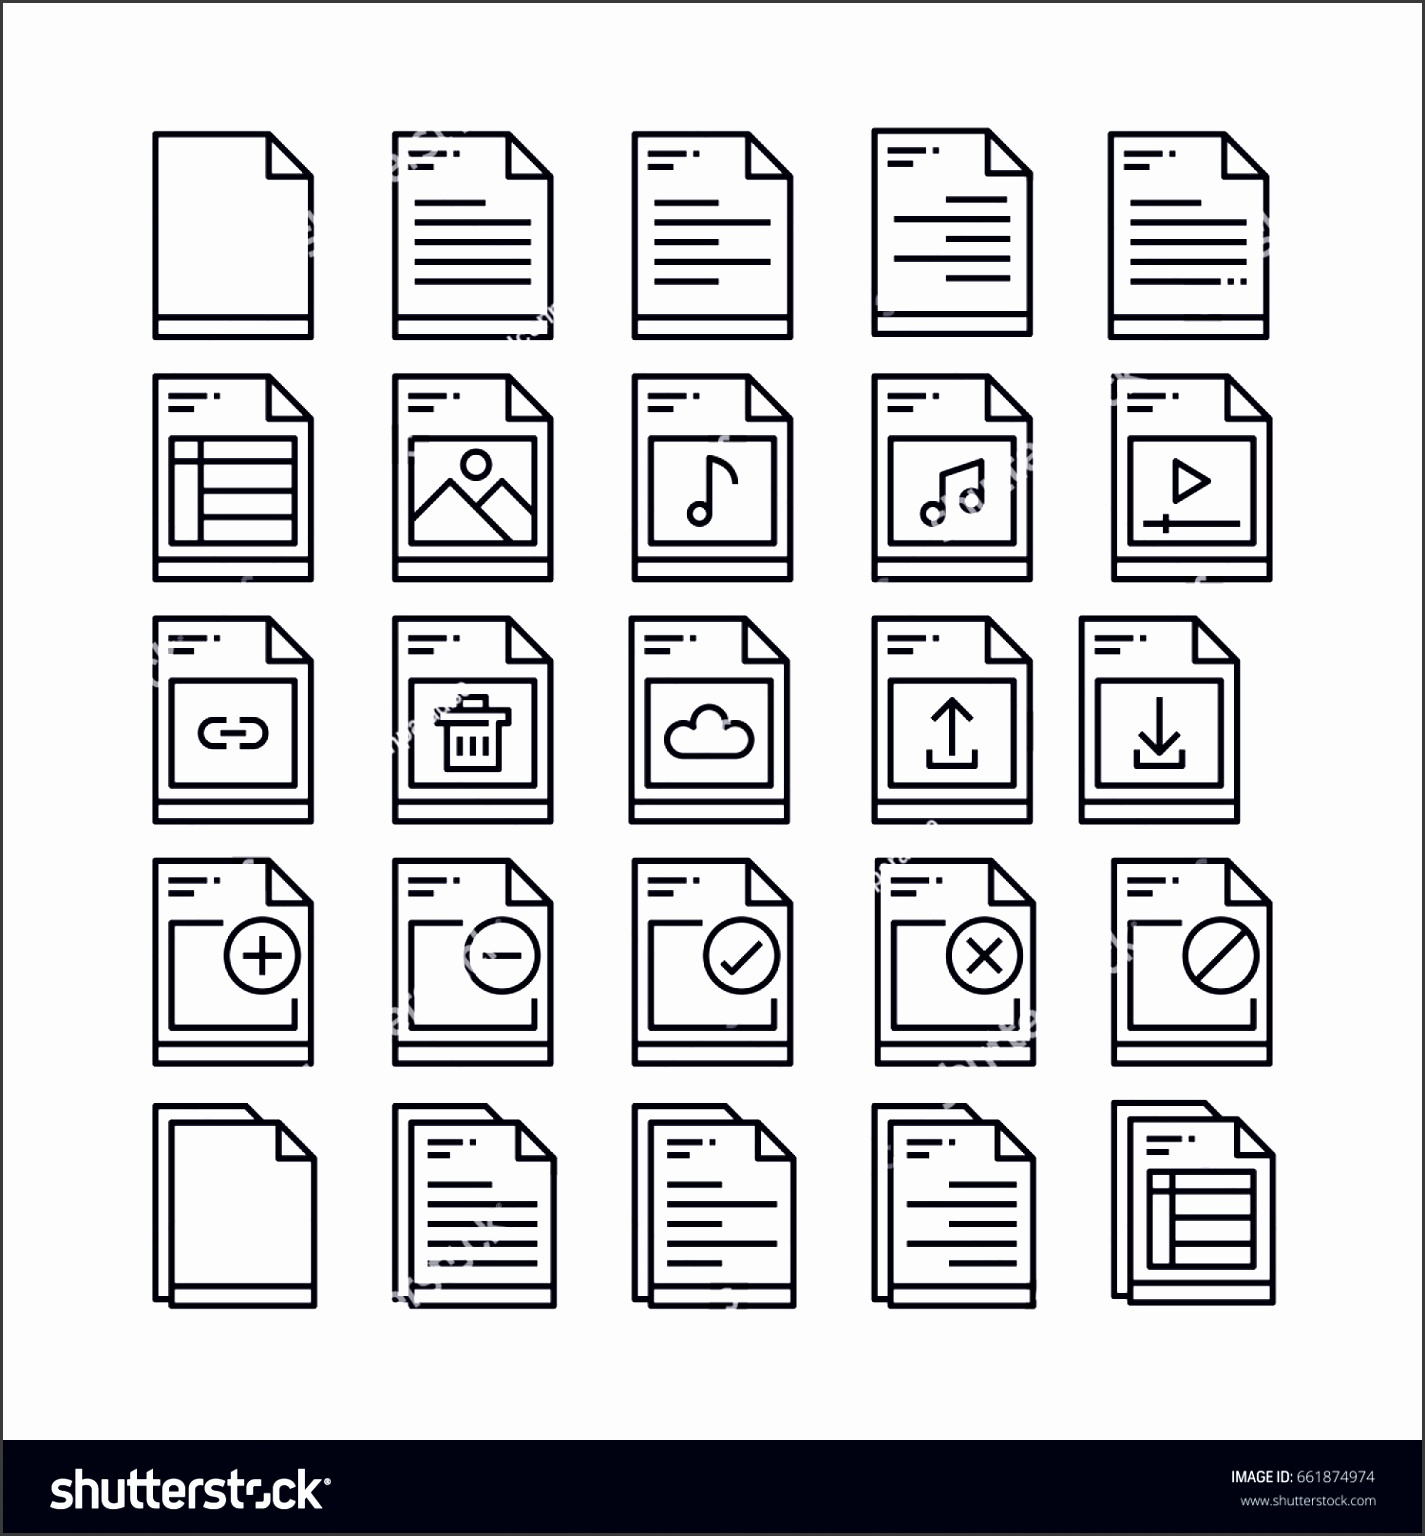 set of file and document outline icon design all icon designed on 64x64 pixel perfect